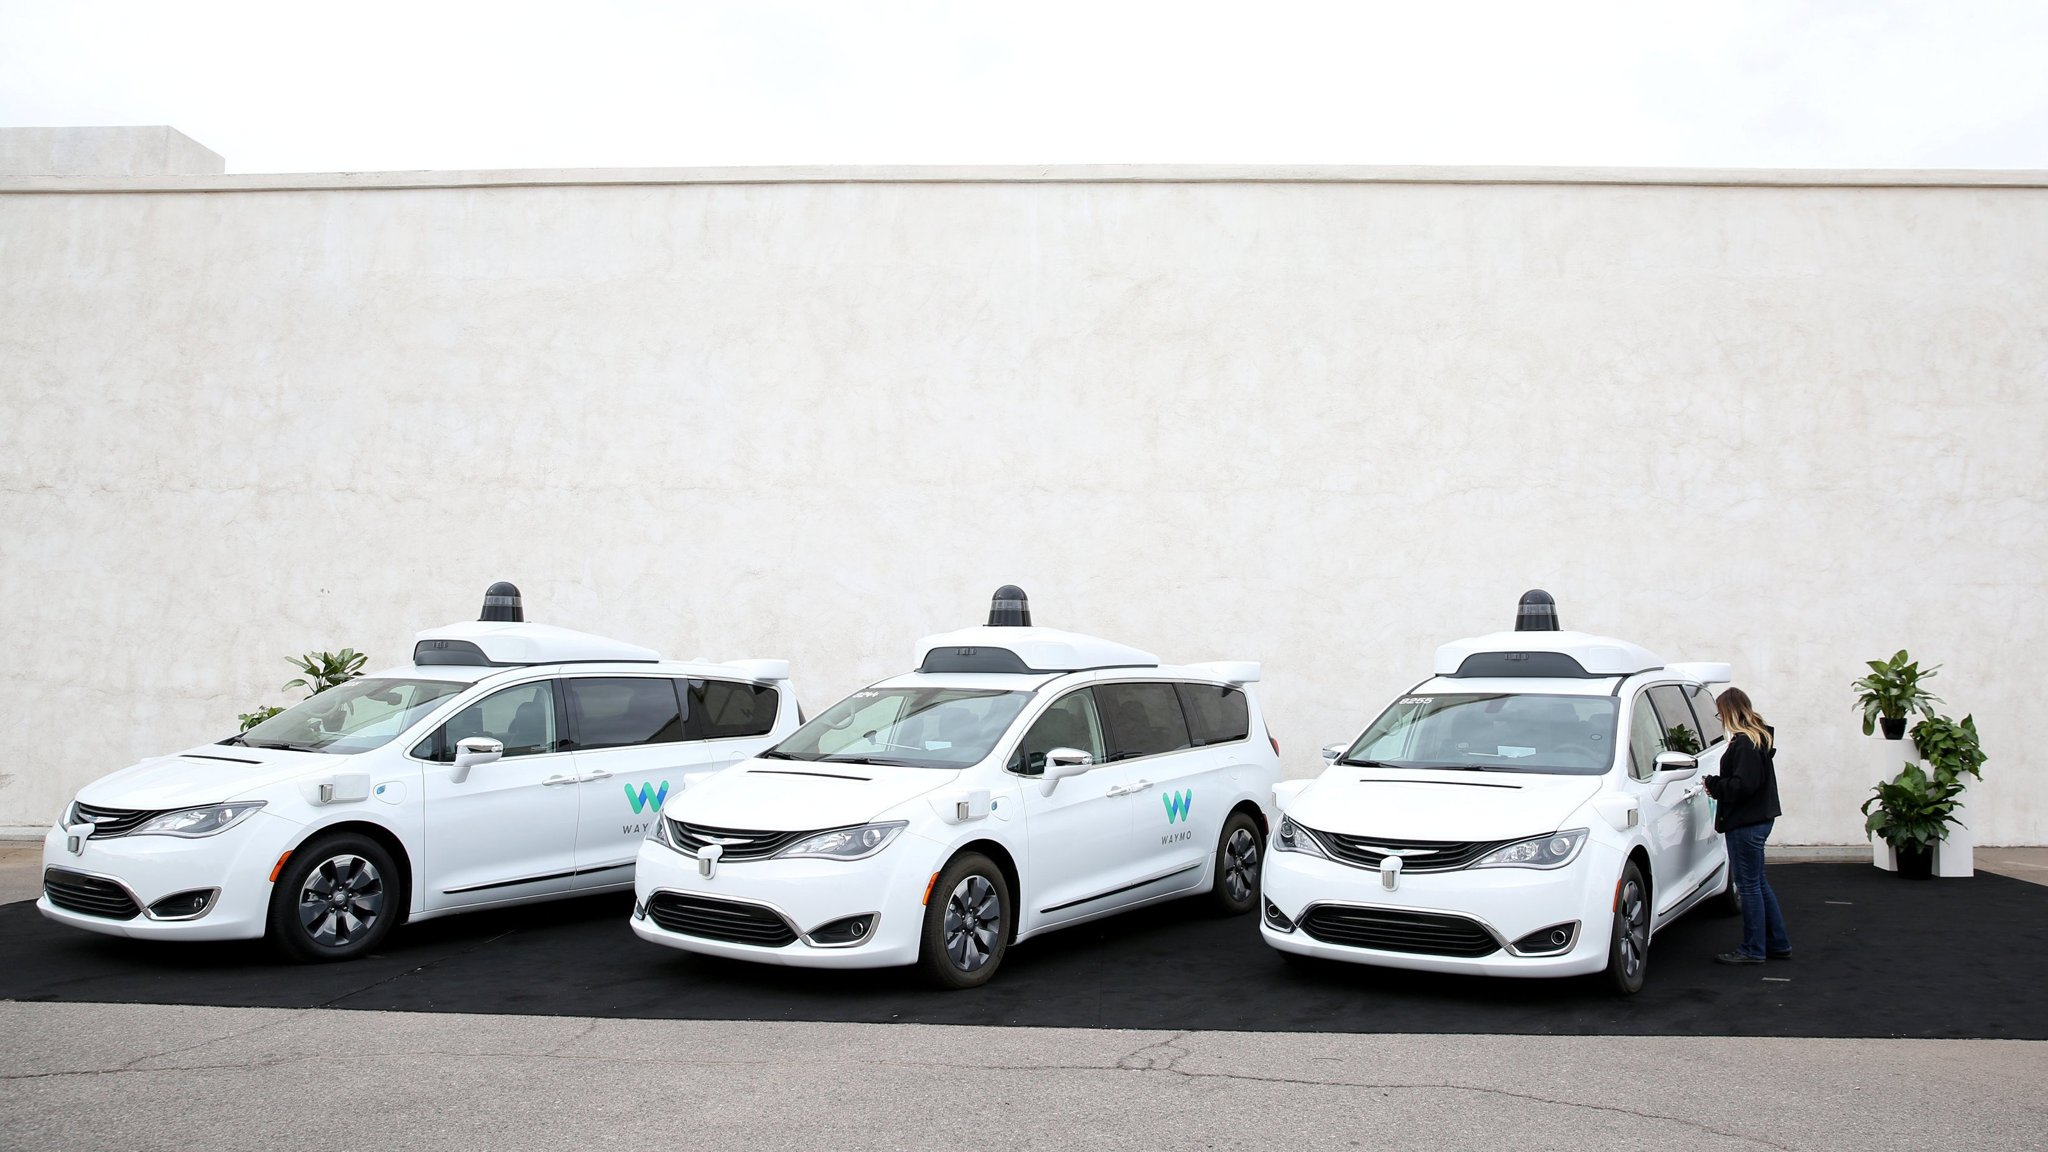 Waymo's driverless taxis are not free of labour costs